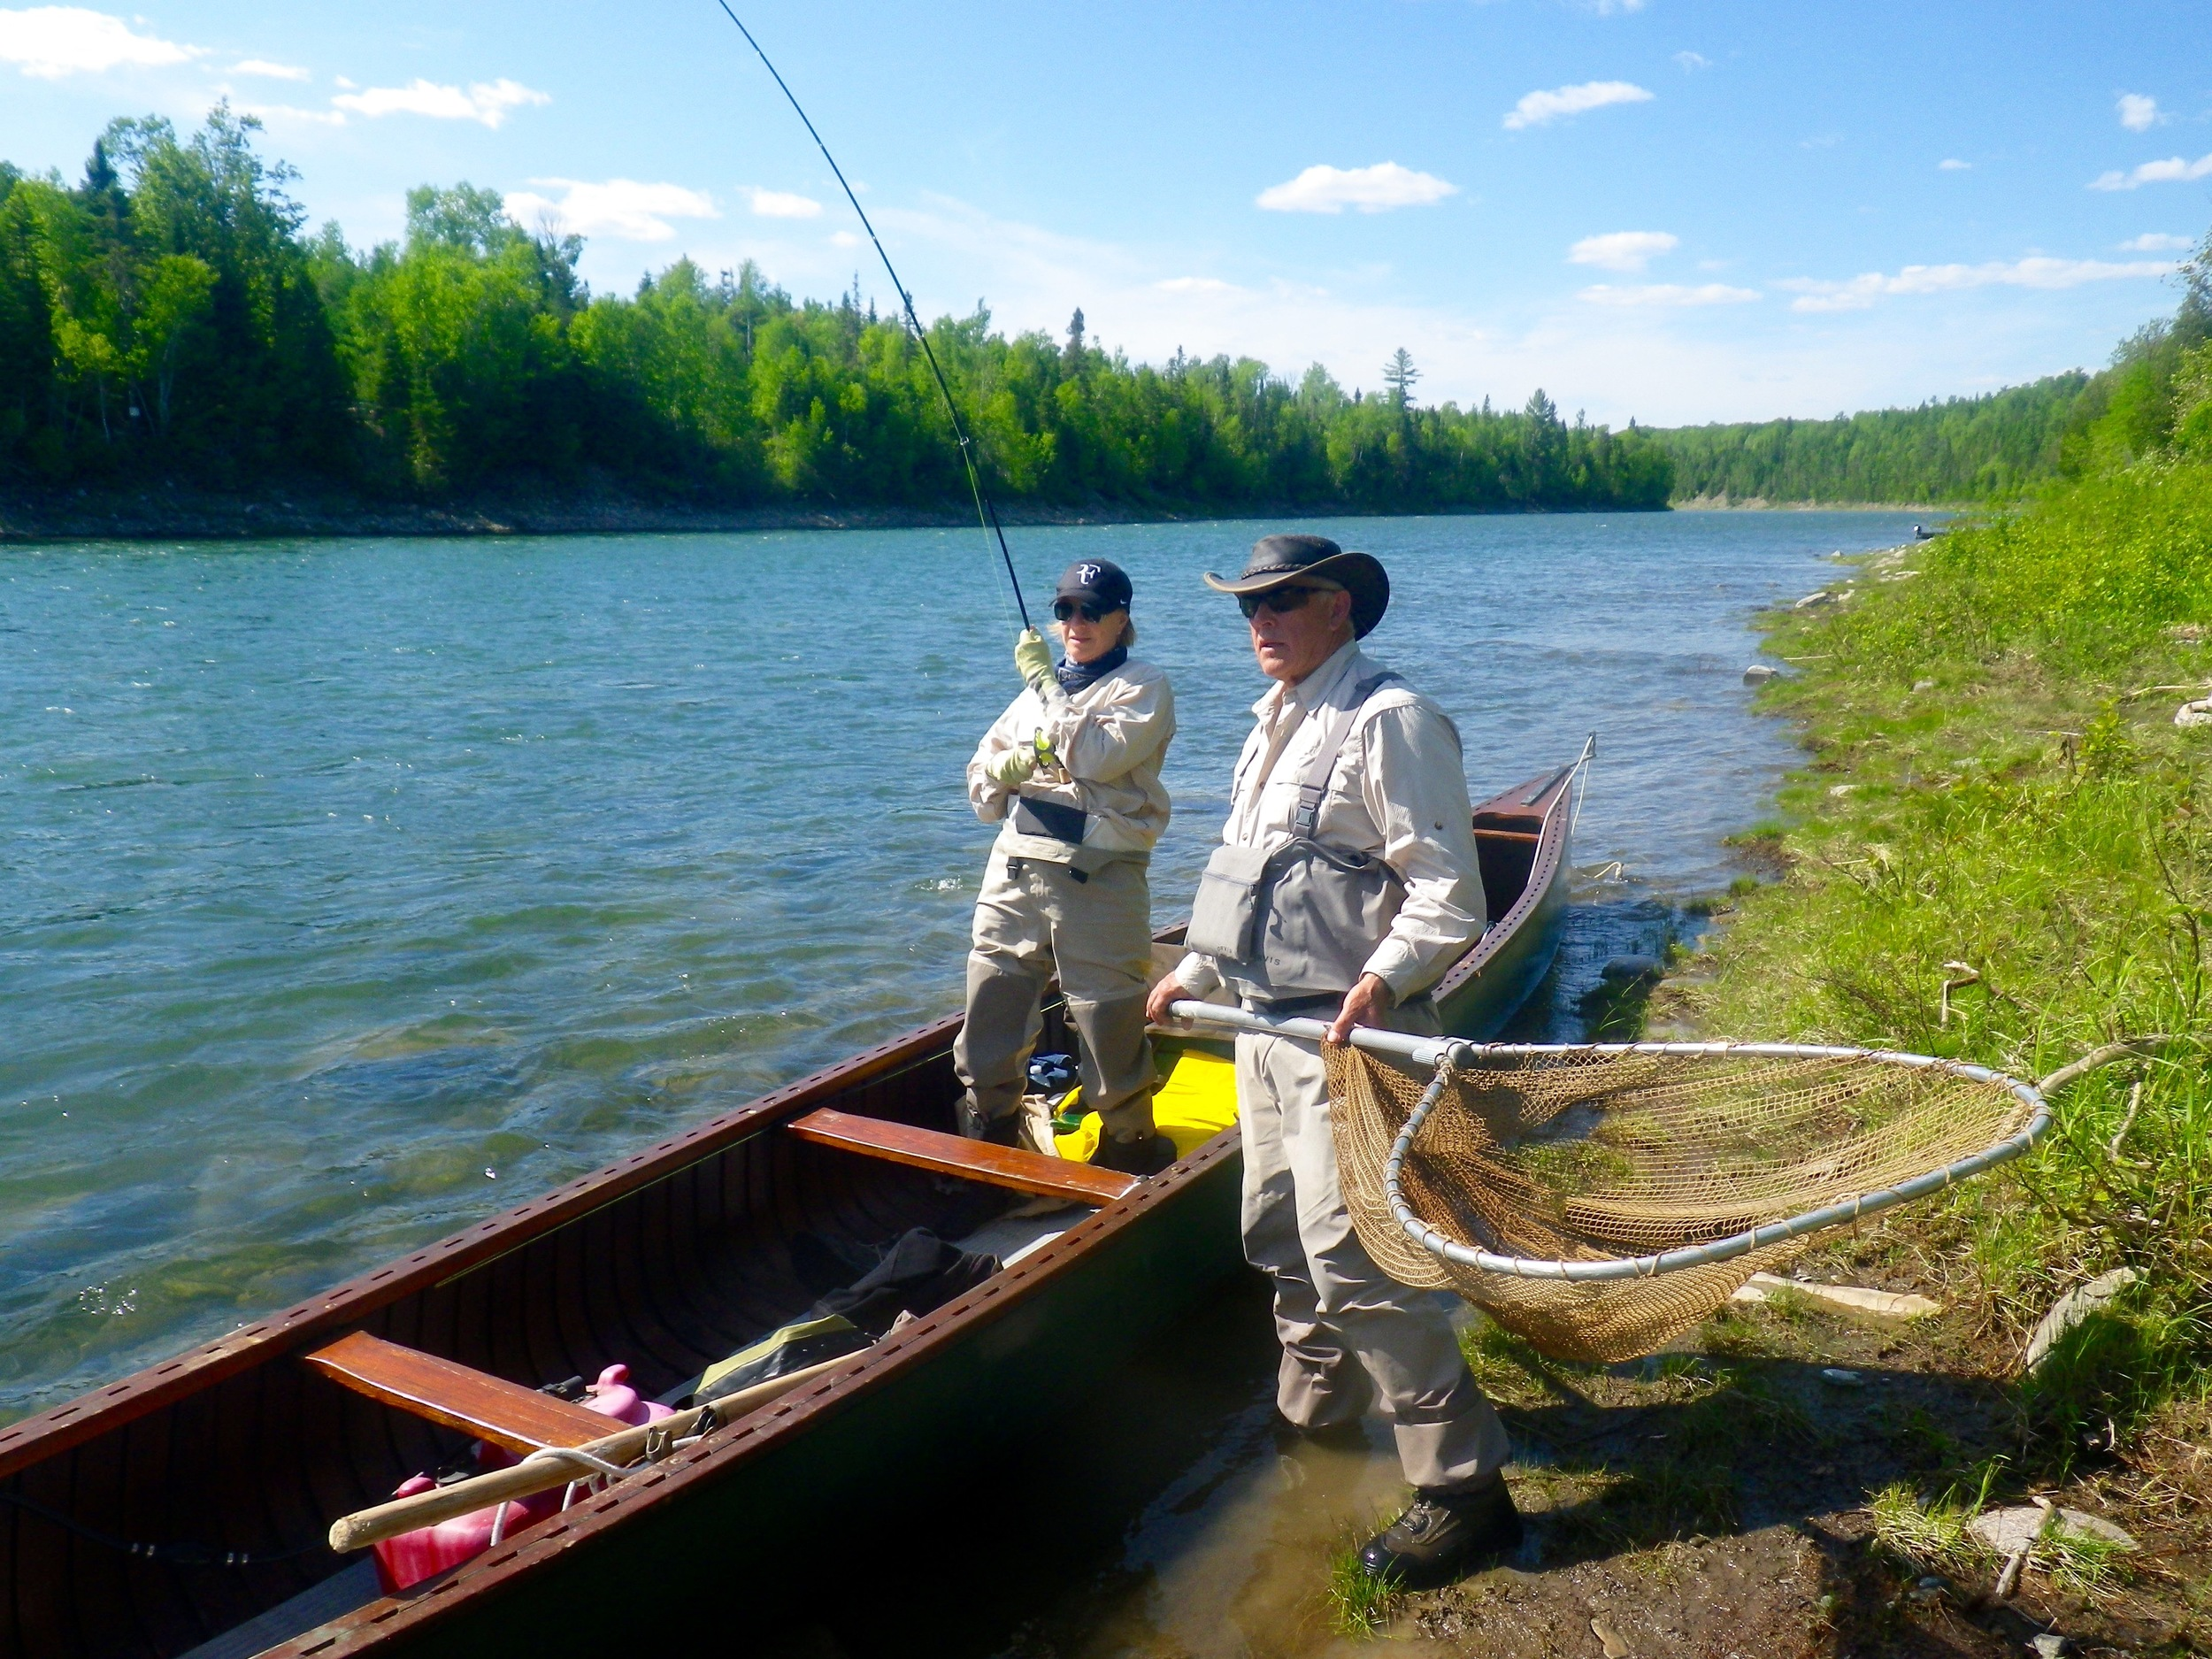 Sylvie LaLande plays a salmon under the watchful eye of Camp Bonaventure guide Jean Marc Poirier. 2016 is Jean Marc's 52nd year on the river! Congratulations Sylvie  and of course Jean Marc.